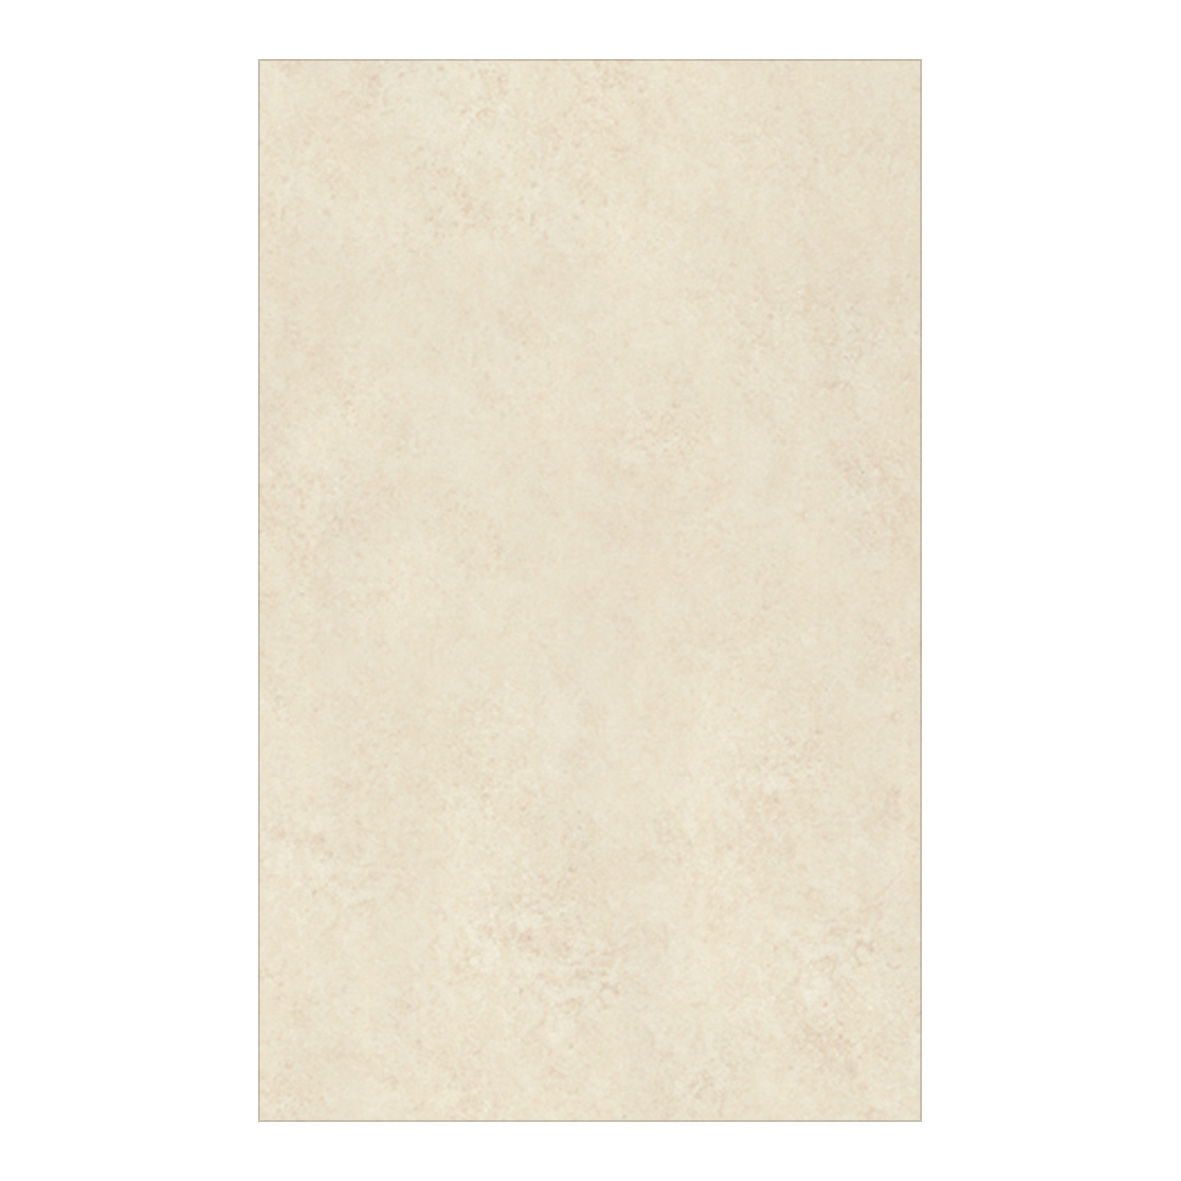 Marfil Sand Wall Tile 400x250mm - Plymouth Tiles